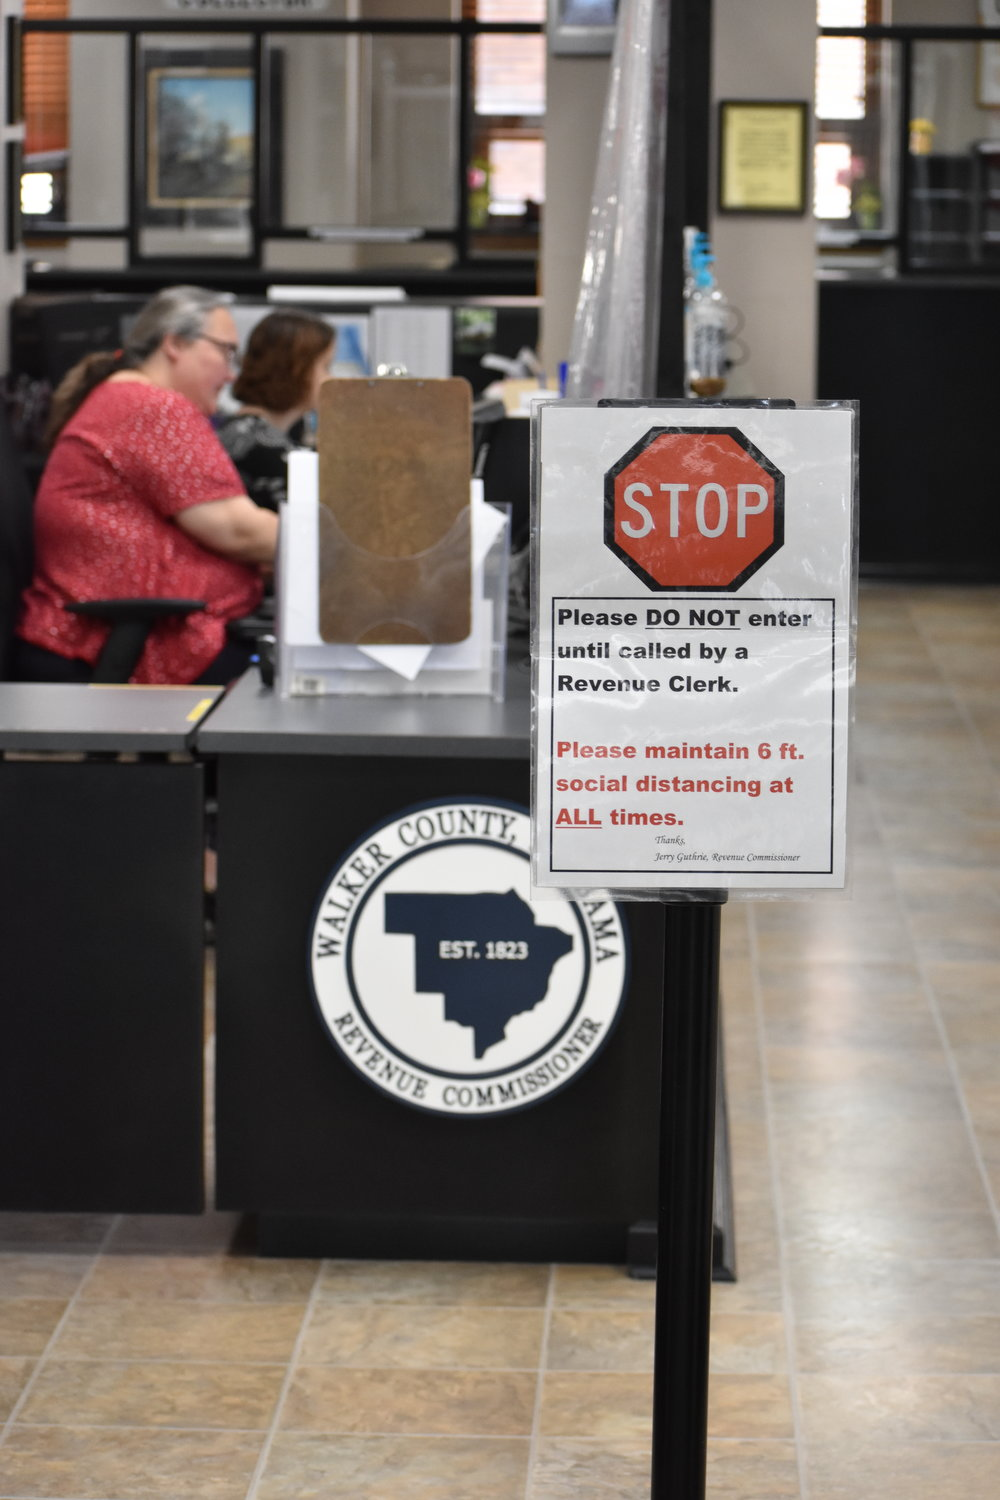 No lines were seen at the Revenue Commissioner's Office Tuesday morning, but many precautions were taken around the office to deal with COVID-19.